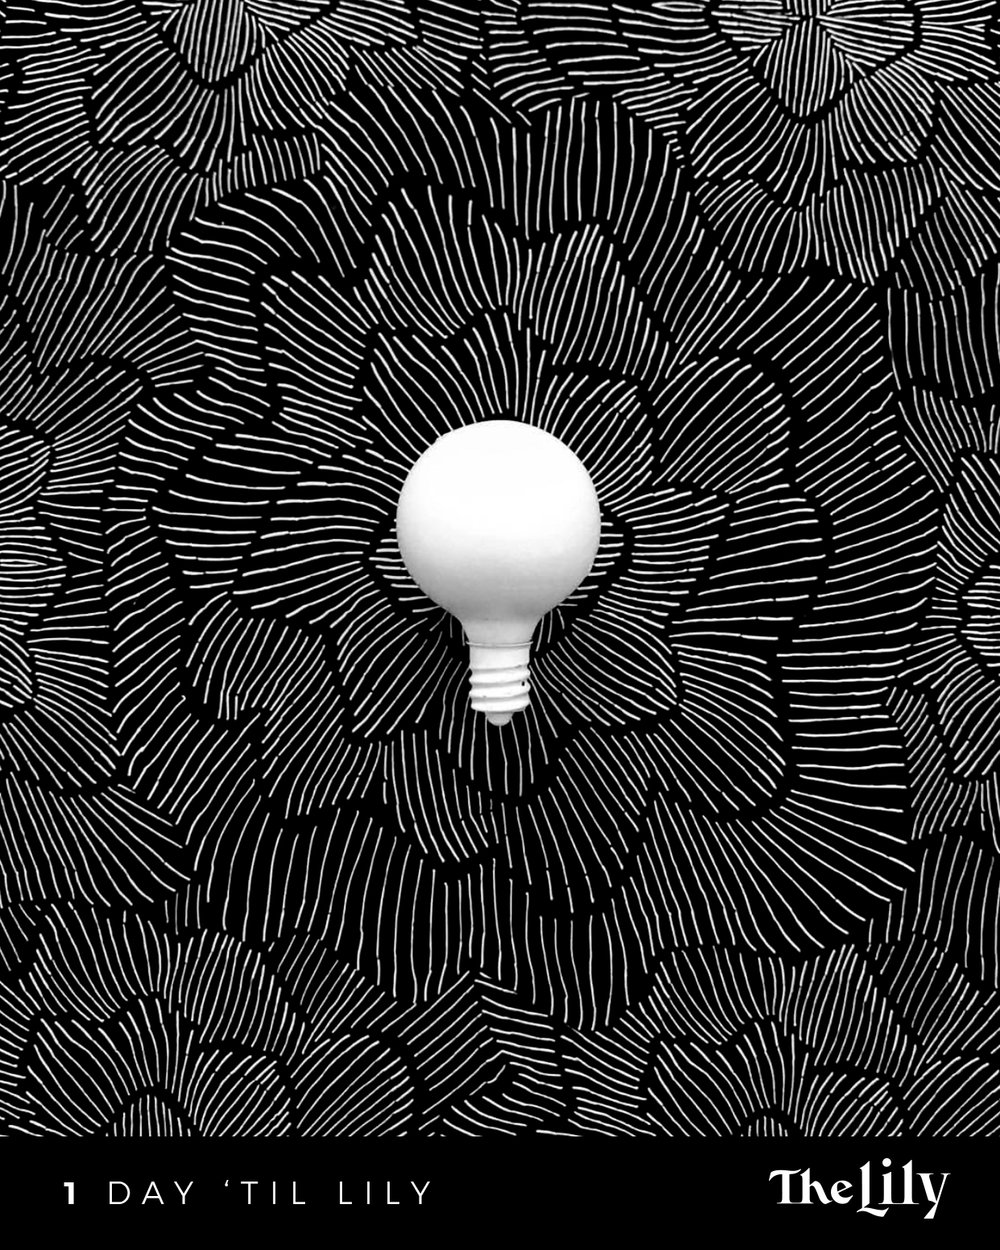 01_Lightbulb_02.jpg